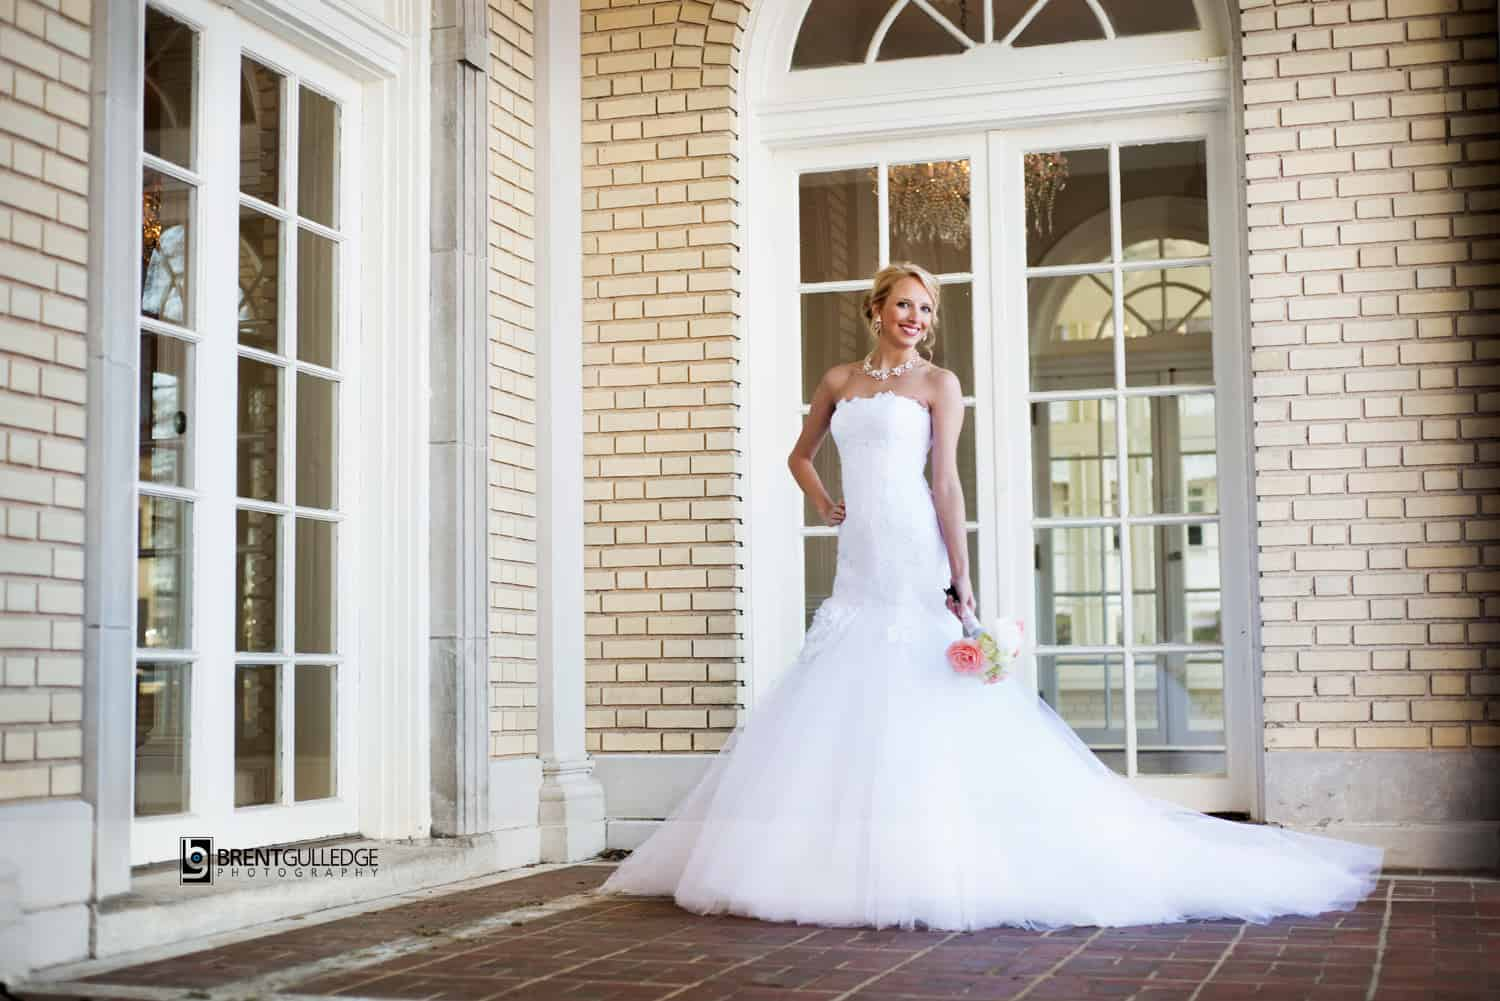 The Ballroom Adorn With Shimmering Chandeliers Grand Staircase Gorgeous Bridal Suite And Lush Formal Garden All Provide Perfect Back Drop For